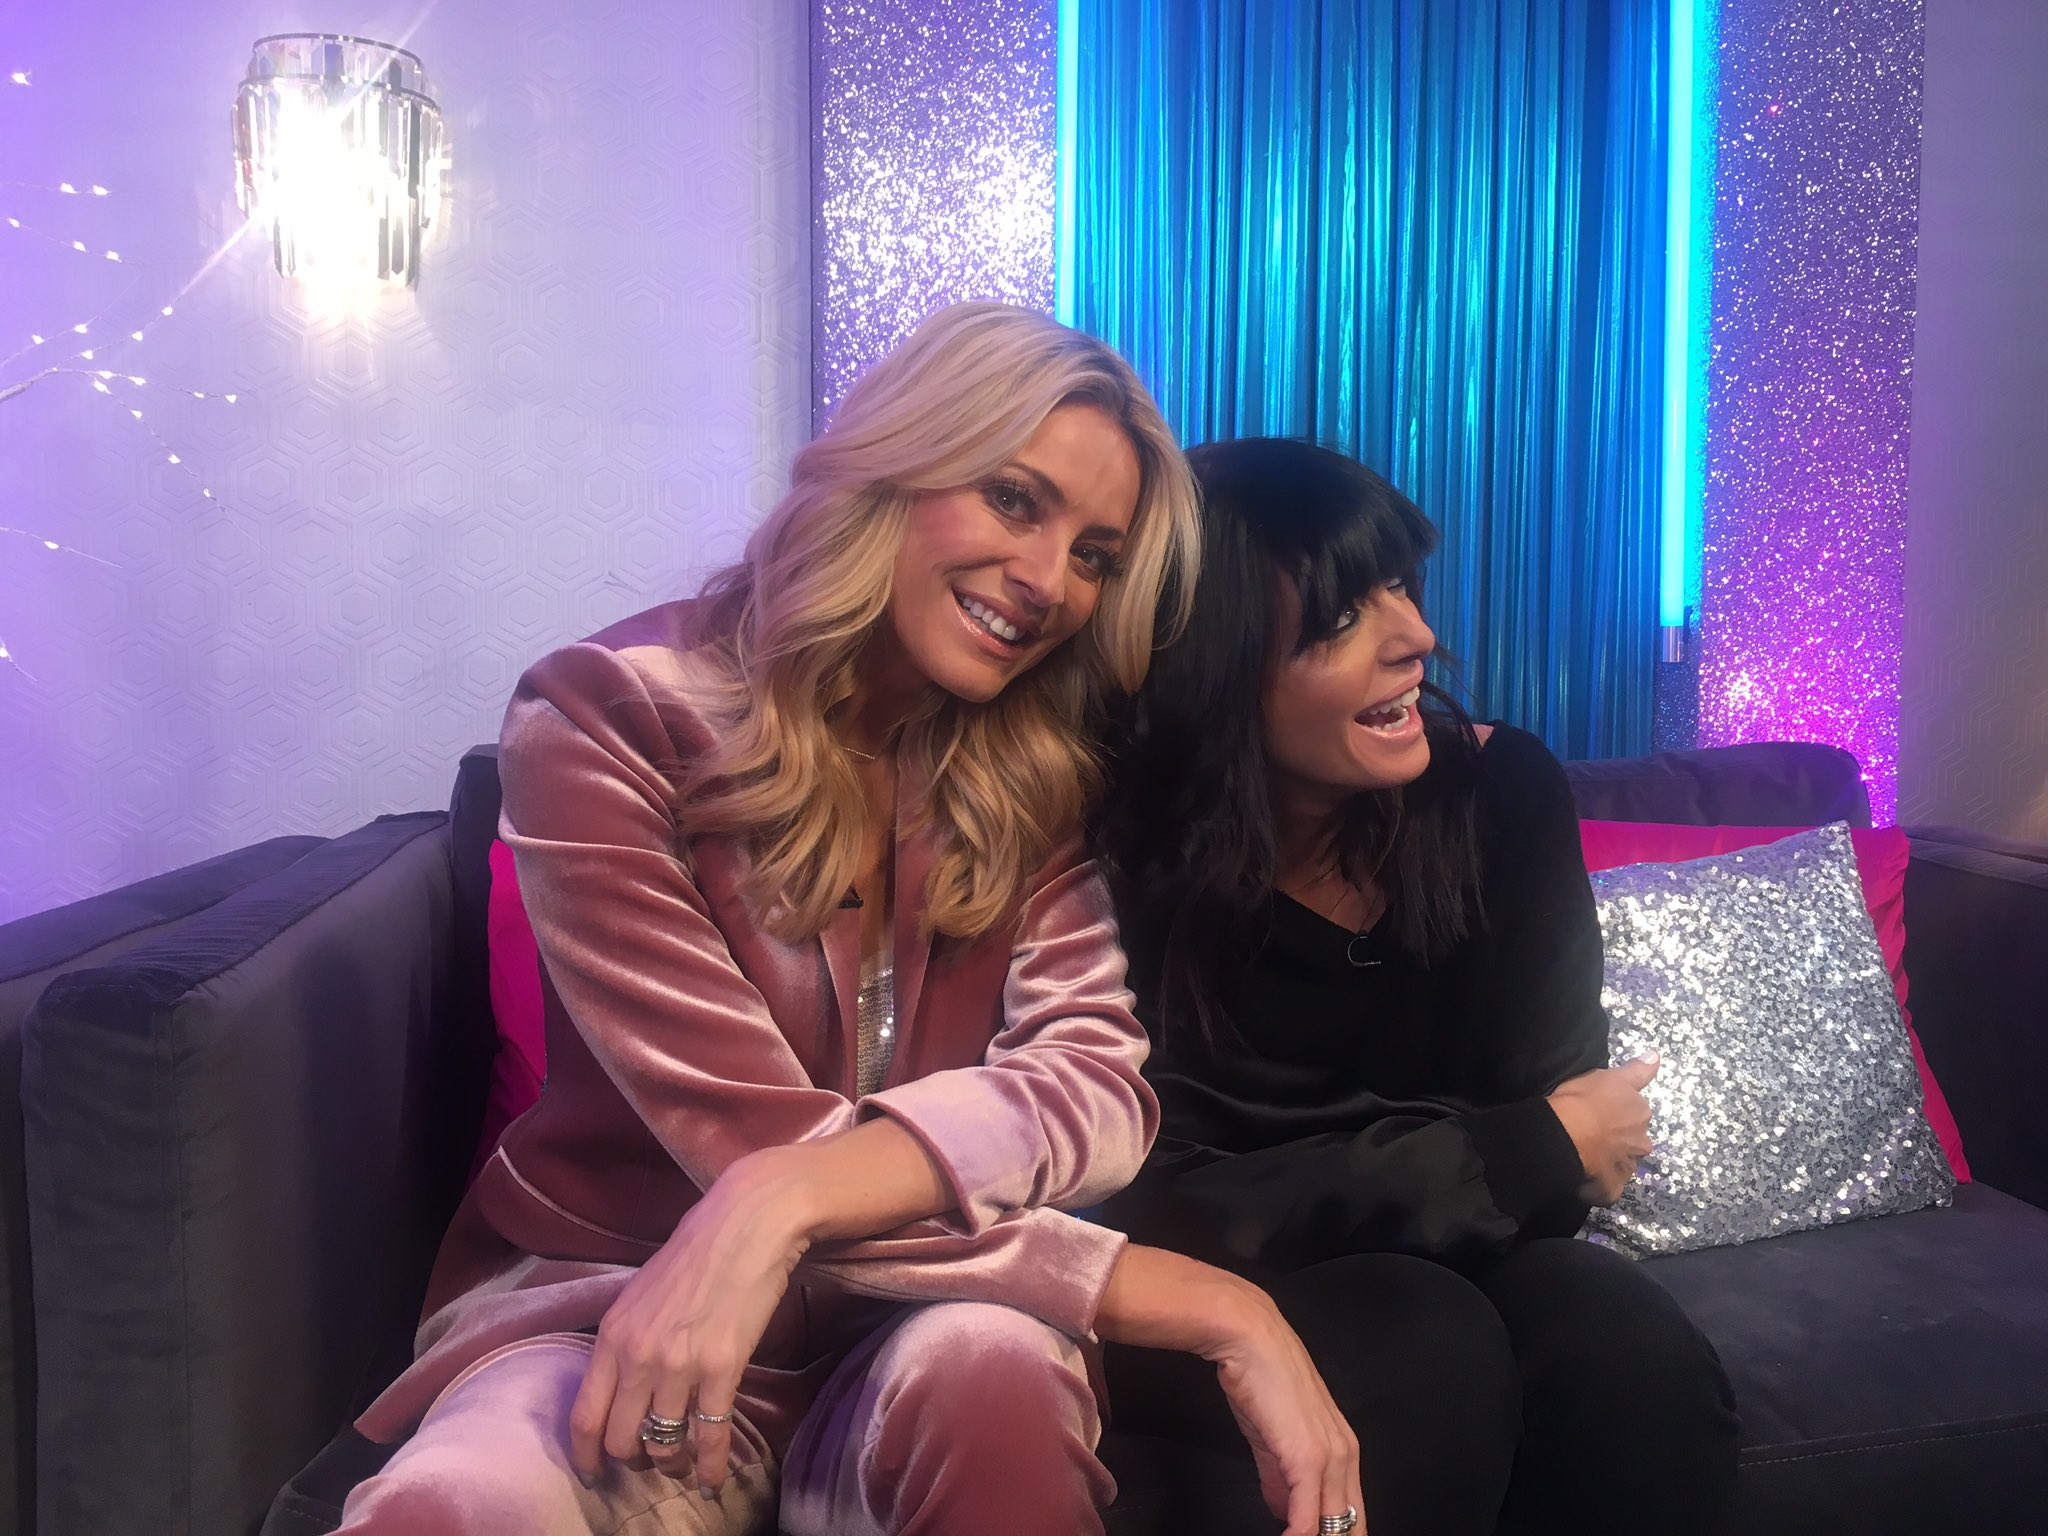 Tonight on #ItTakesTwo @TessDaly and @ClaudiaWinkle! Now @BBCTwo 👯 https://t.co/ofm97DZrXm